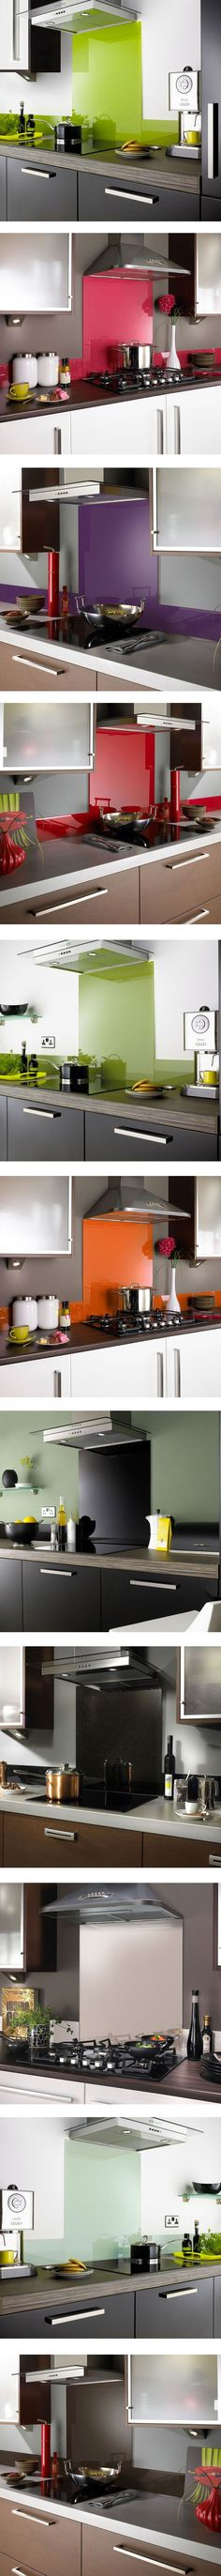 Backslash ideas | home remodel ideas